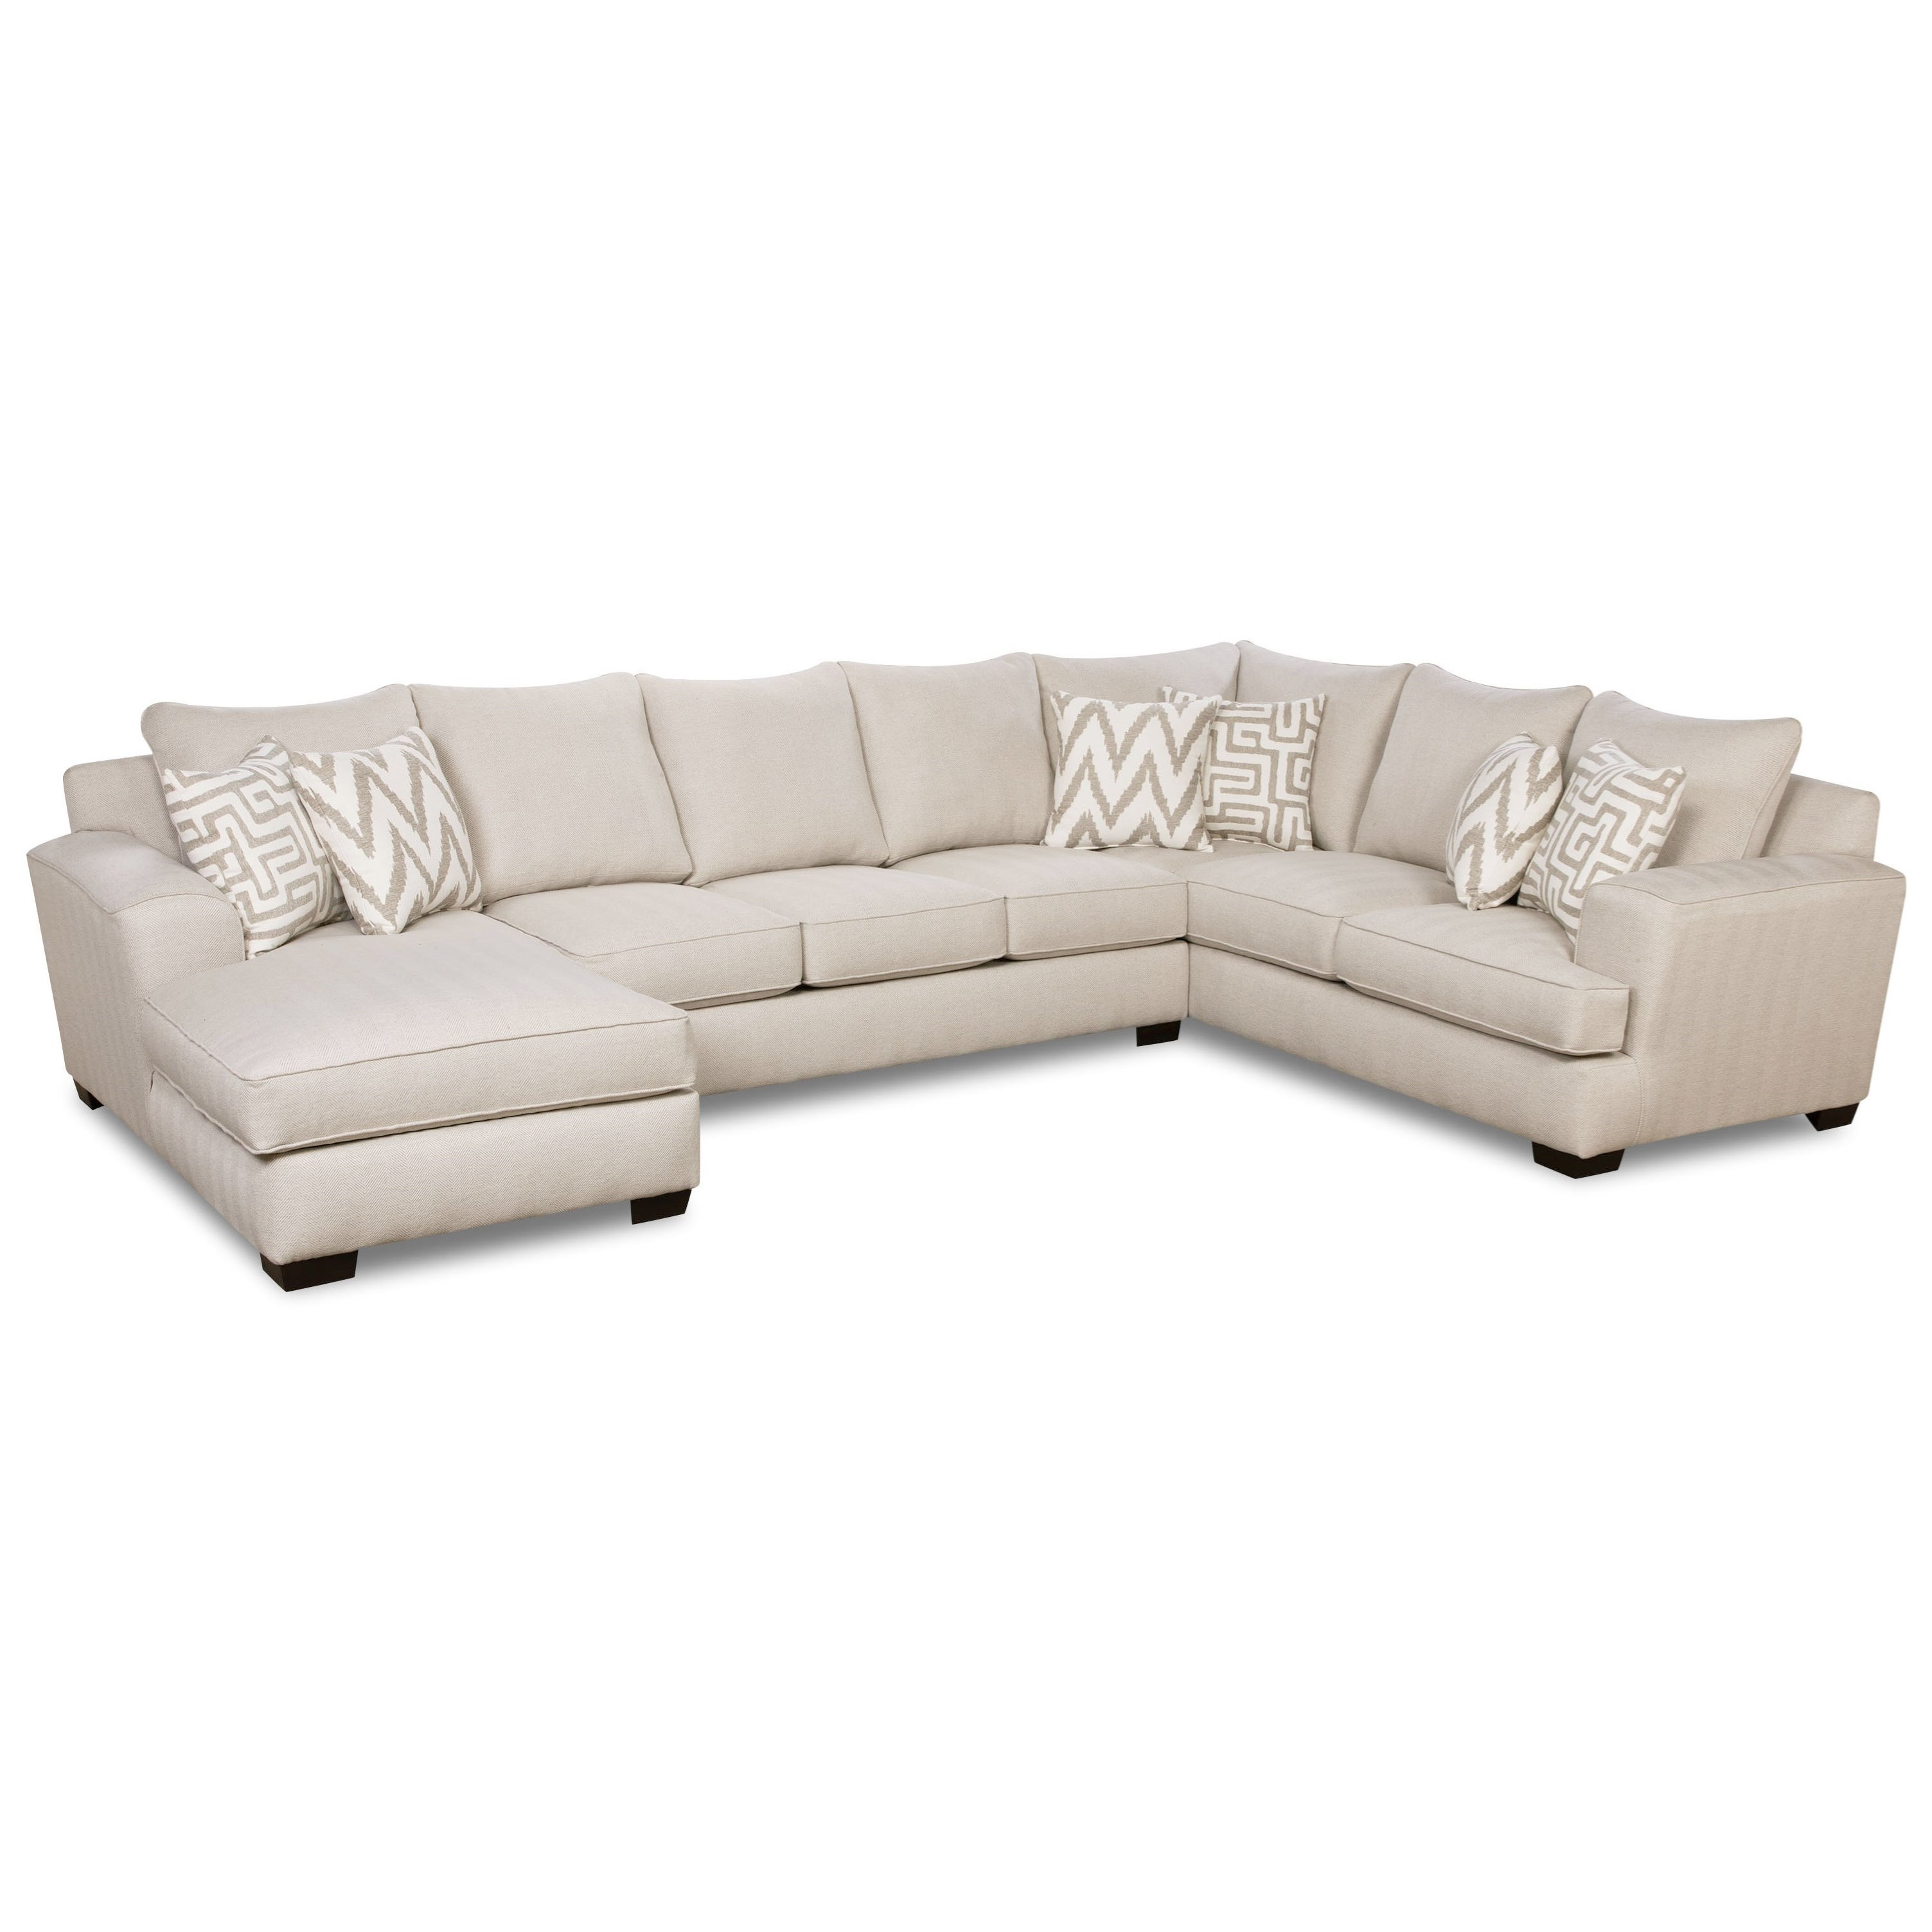 32B0 3-Piece Sectional by Corinthian at Story & Lee Furniture